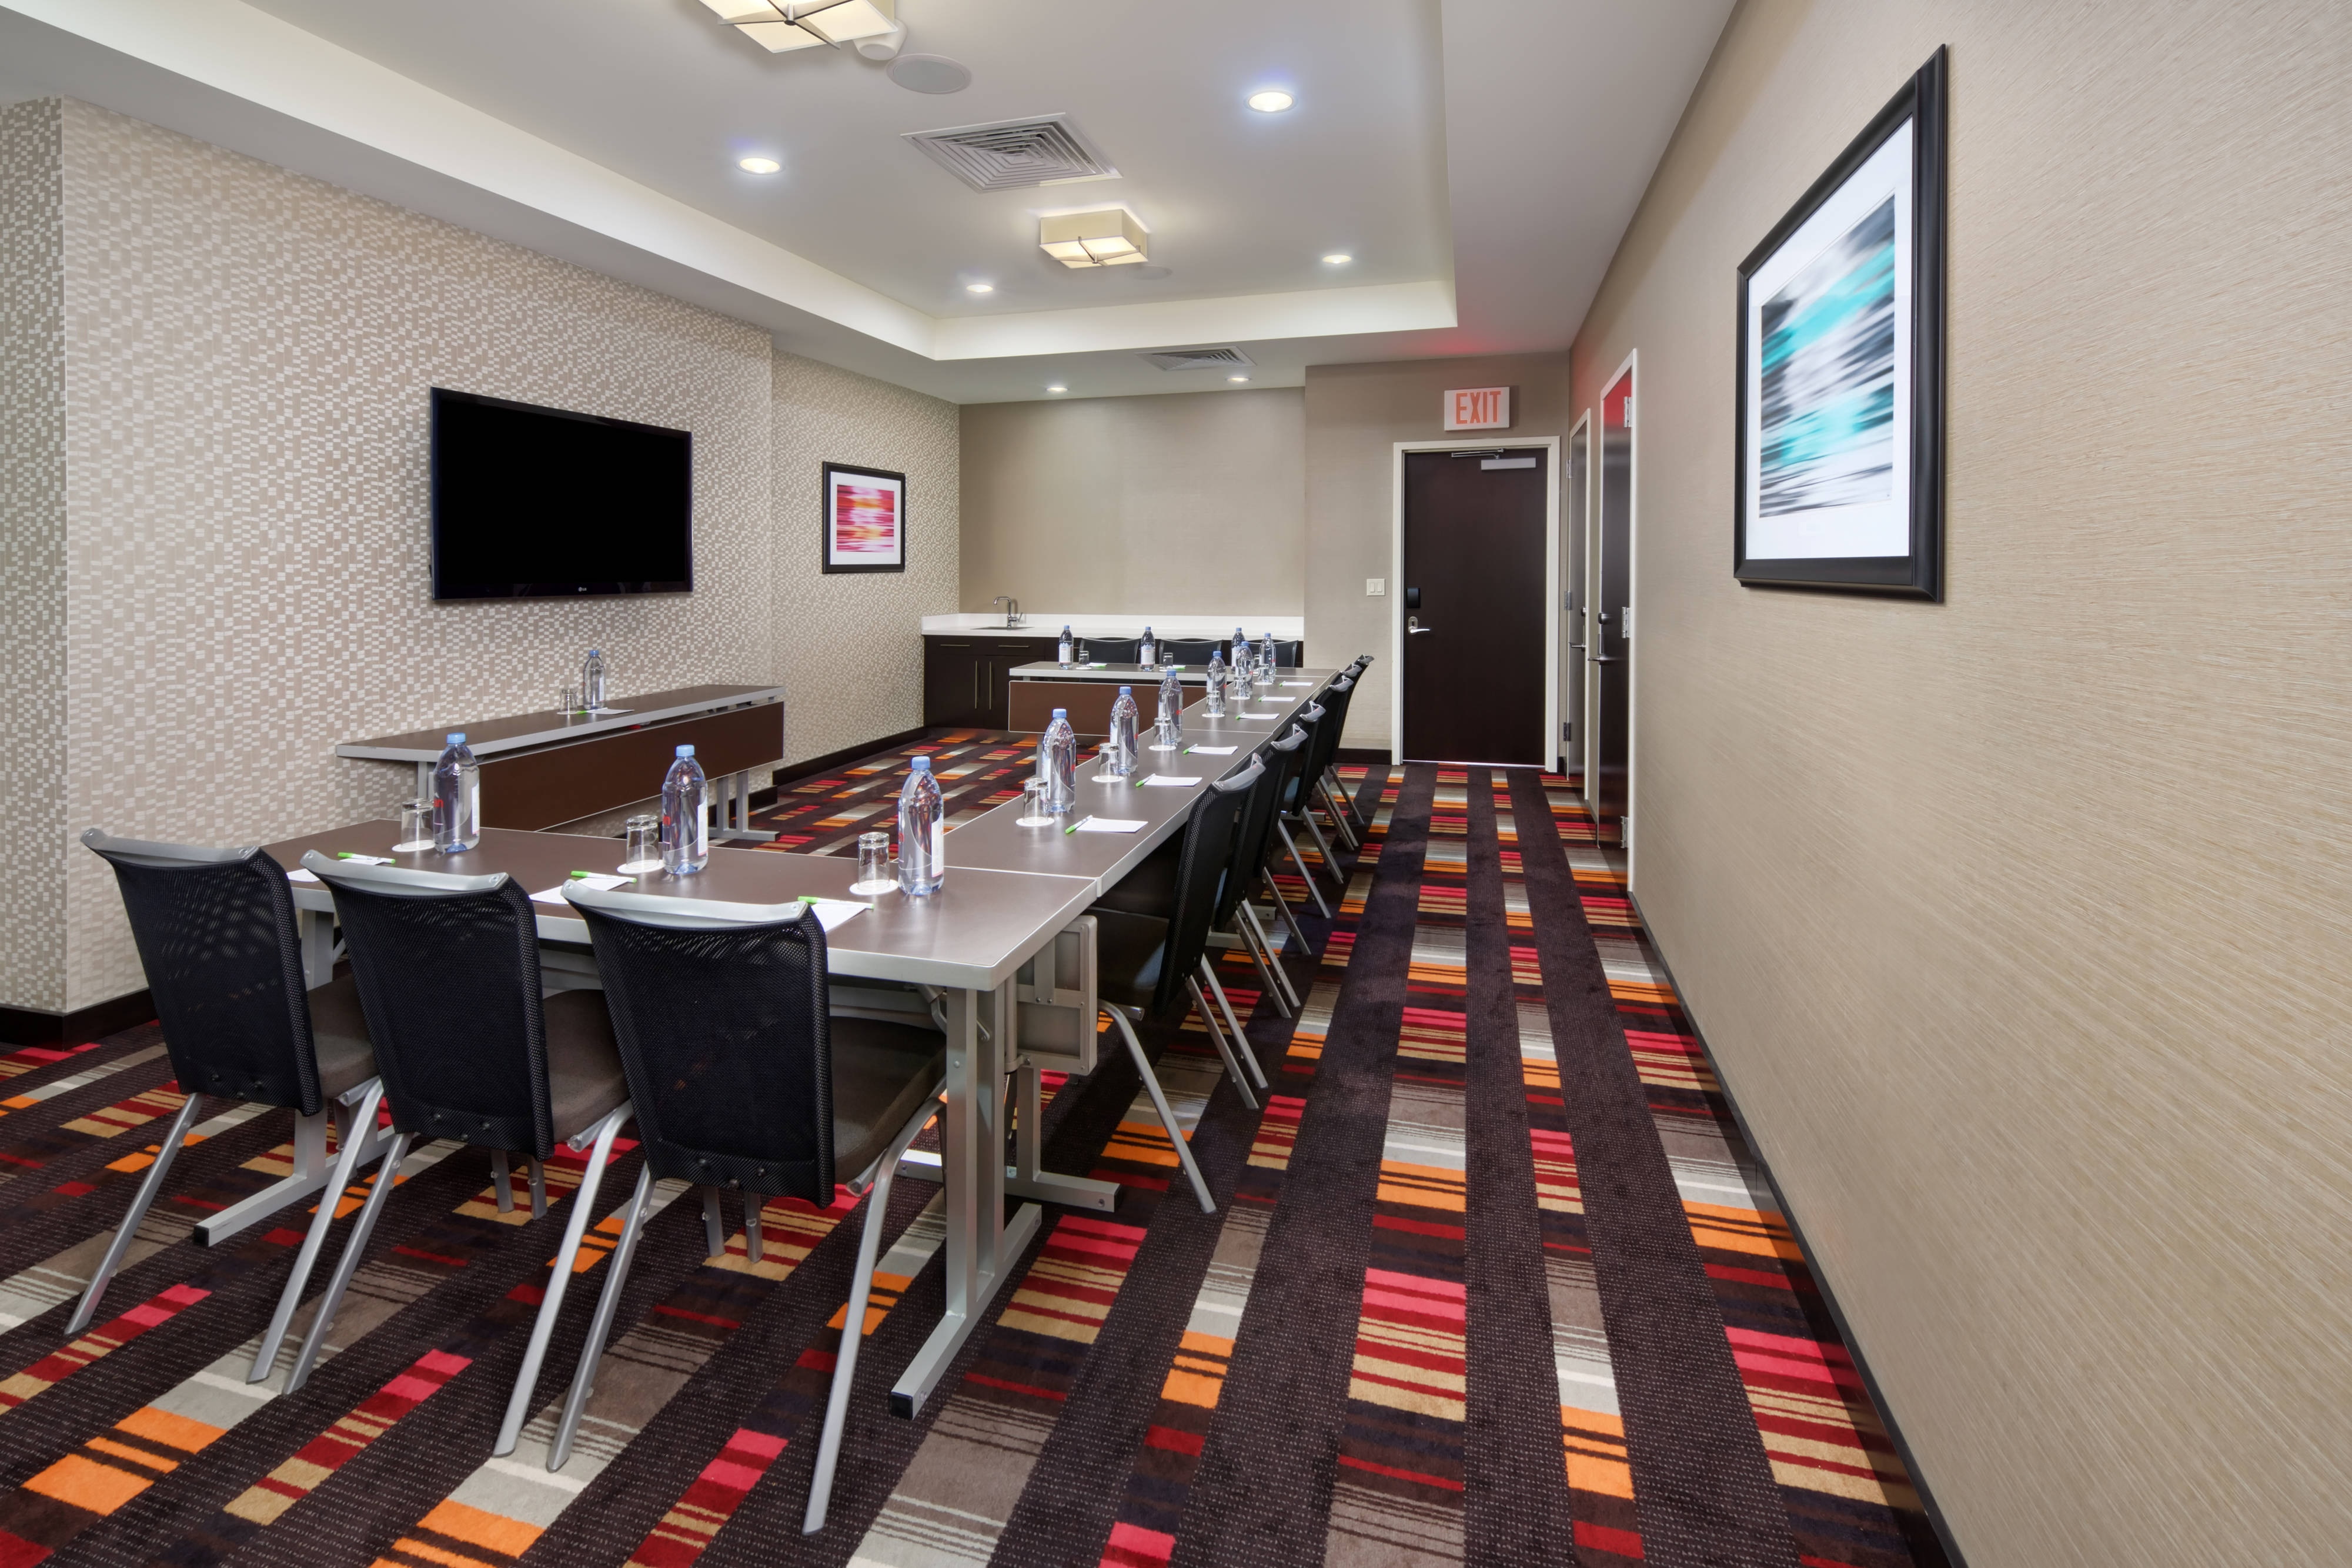 New York Hotel Meeting Space at the Courtyard Times Square West